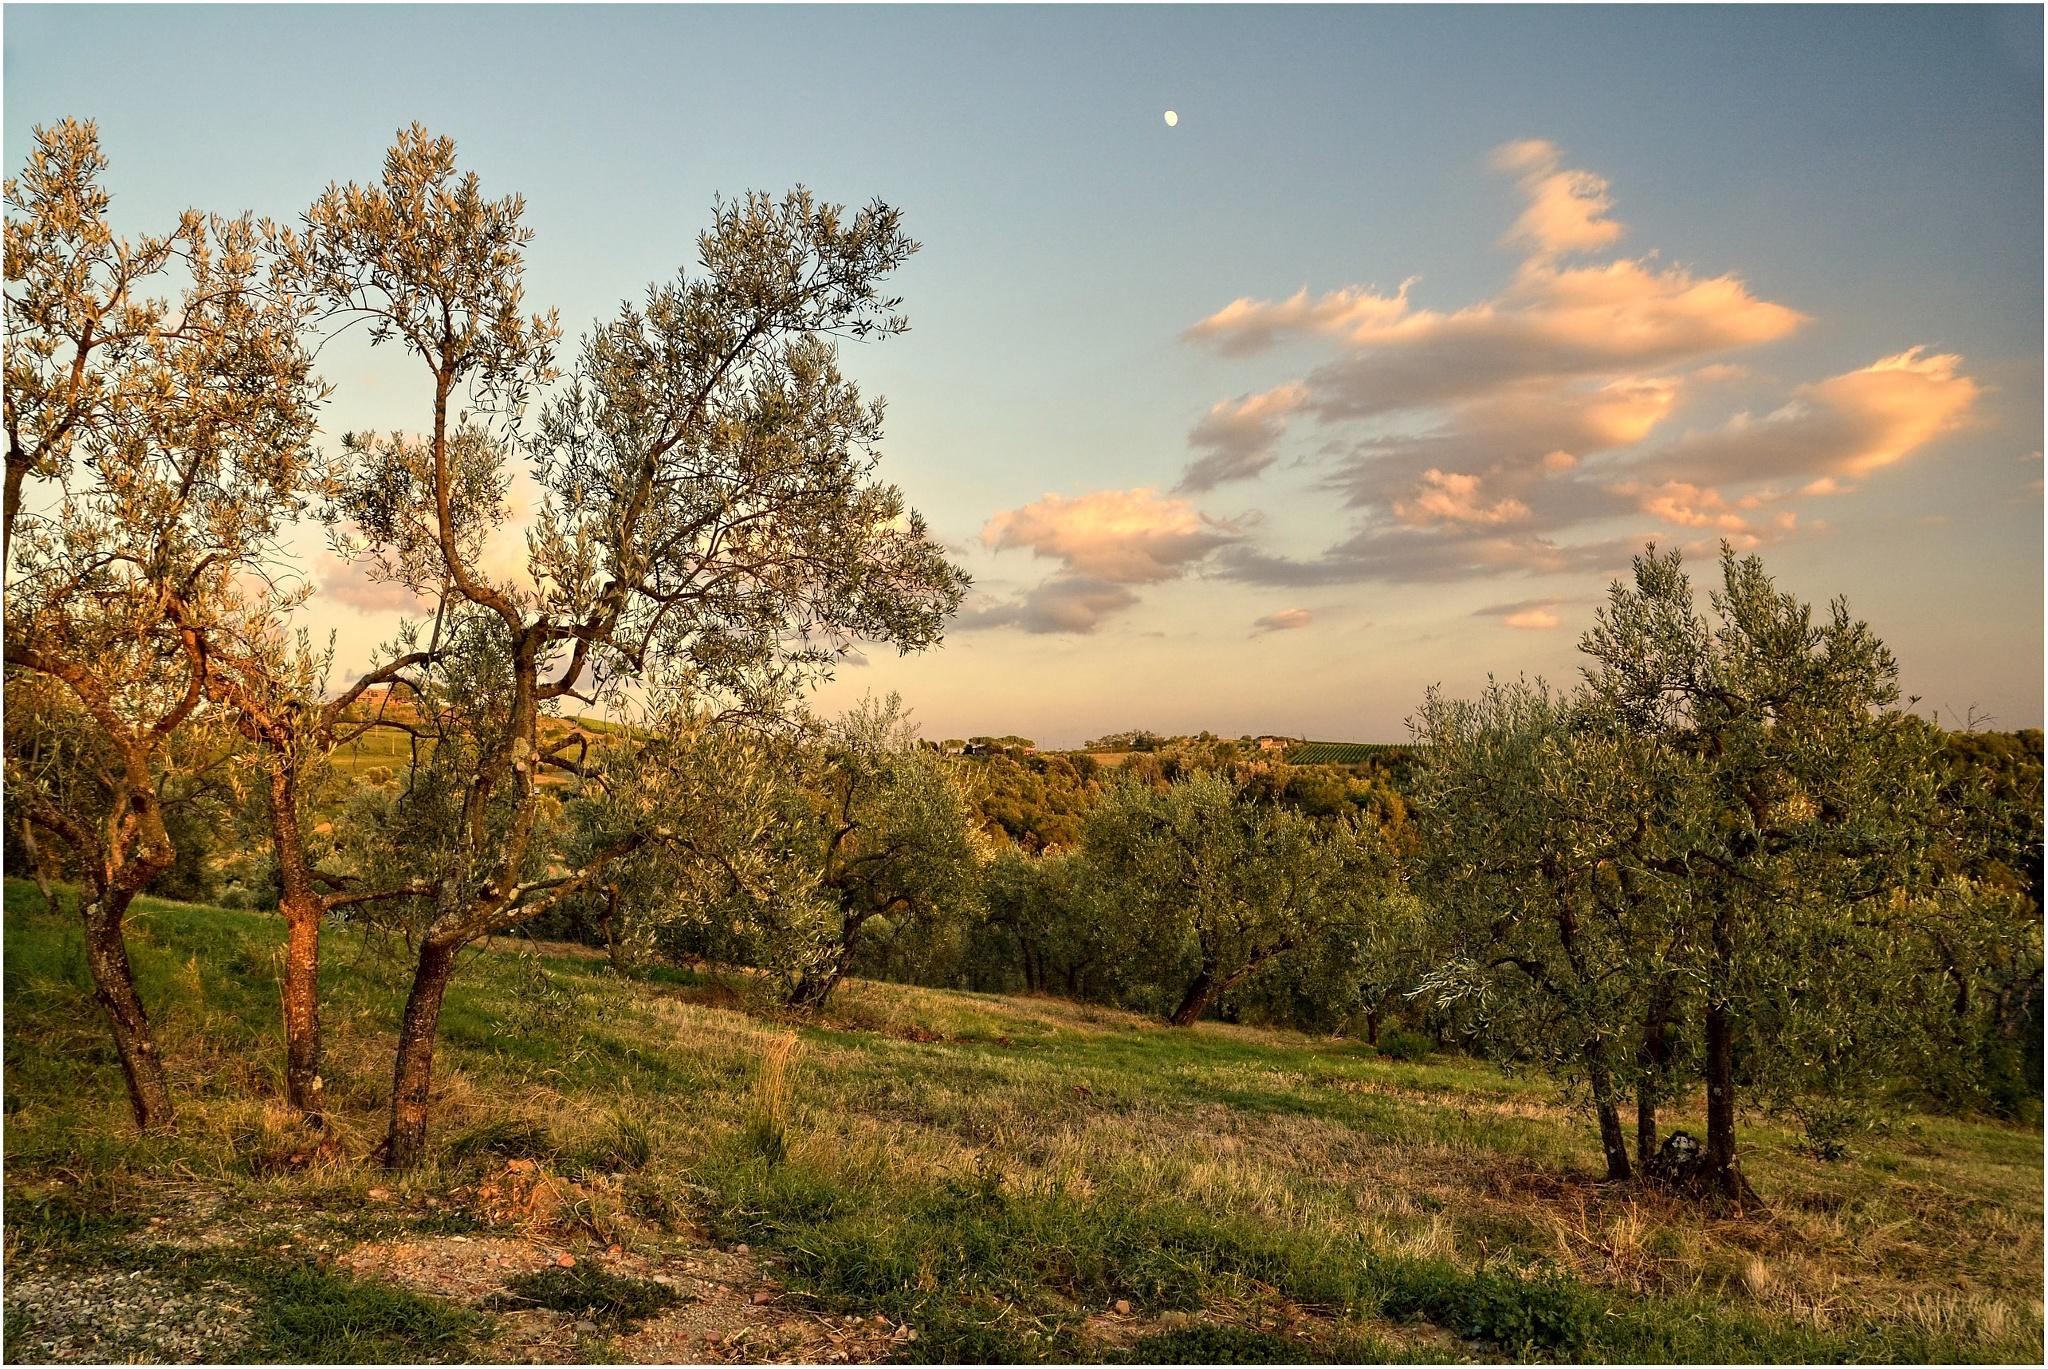 olive tree by sylwester.sikora